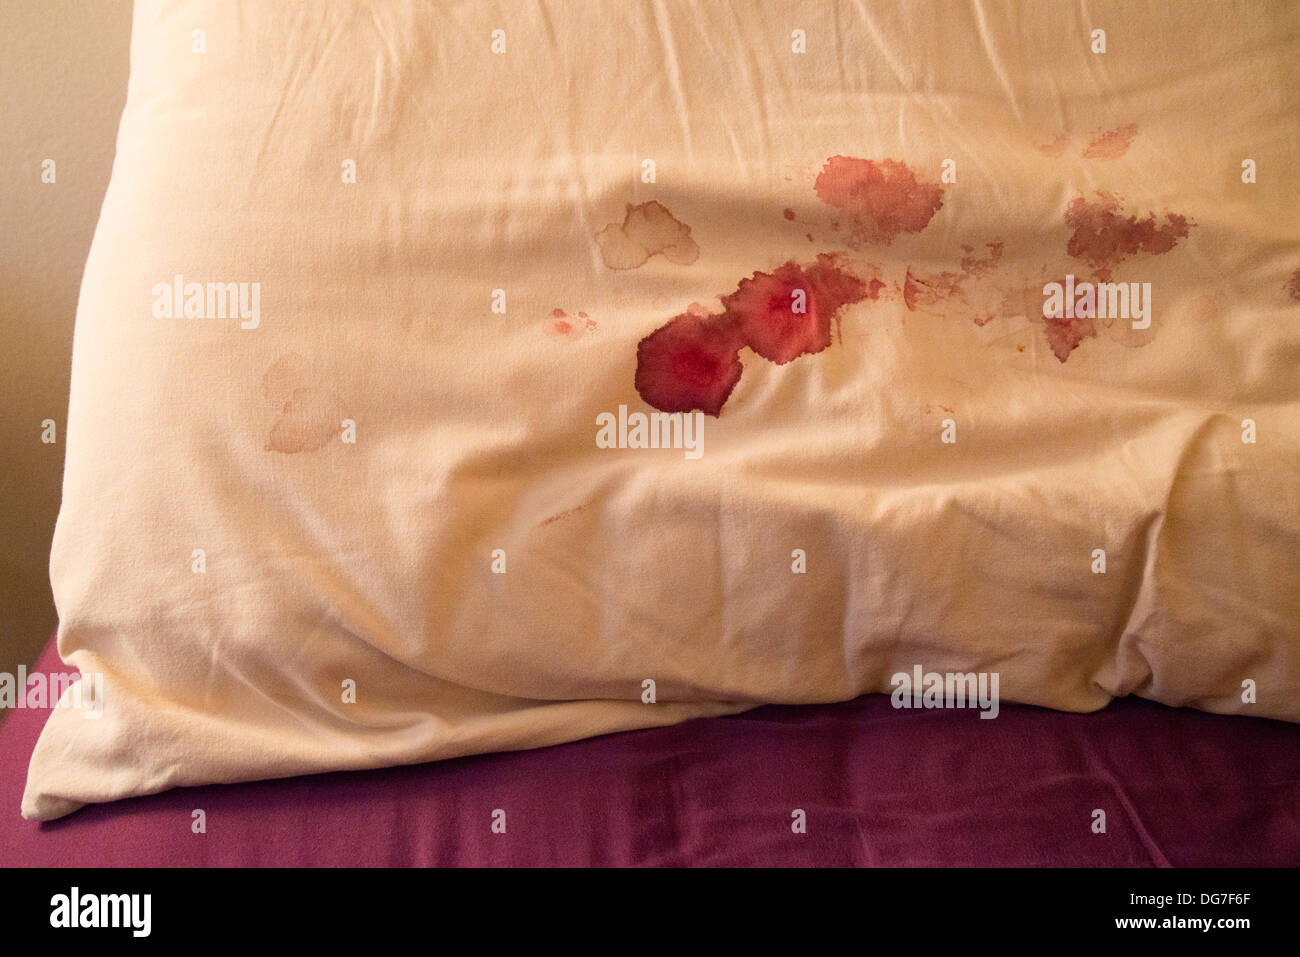 blood on pillow - Stock Image